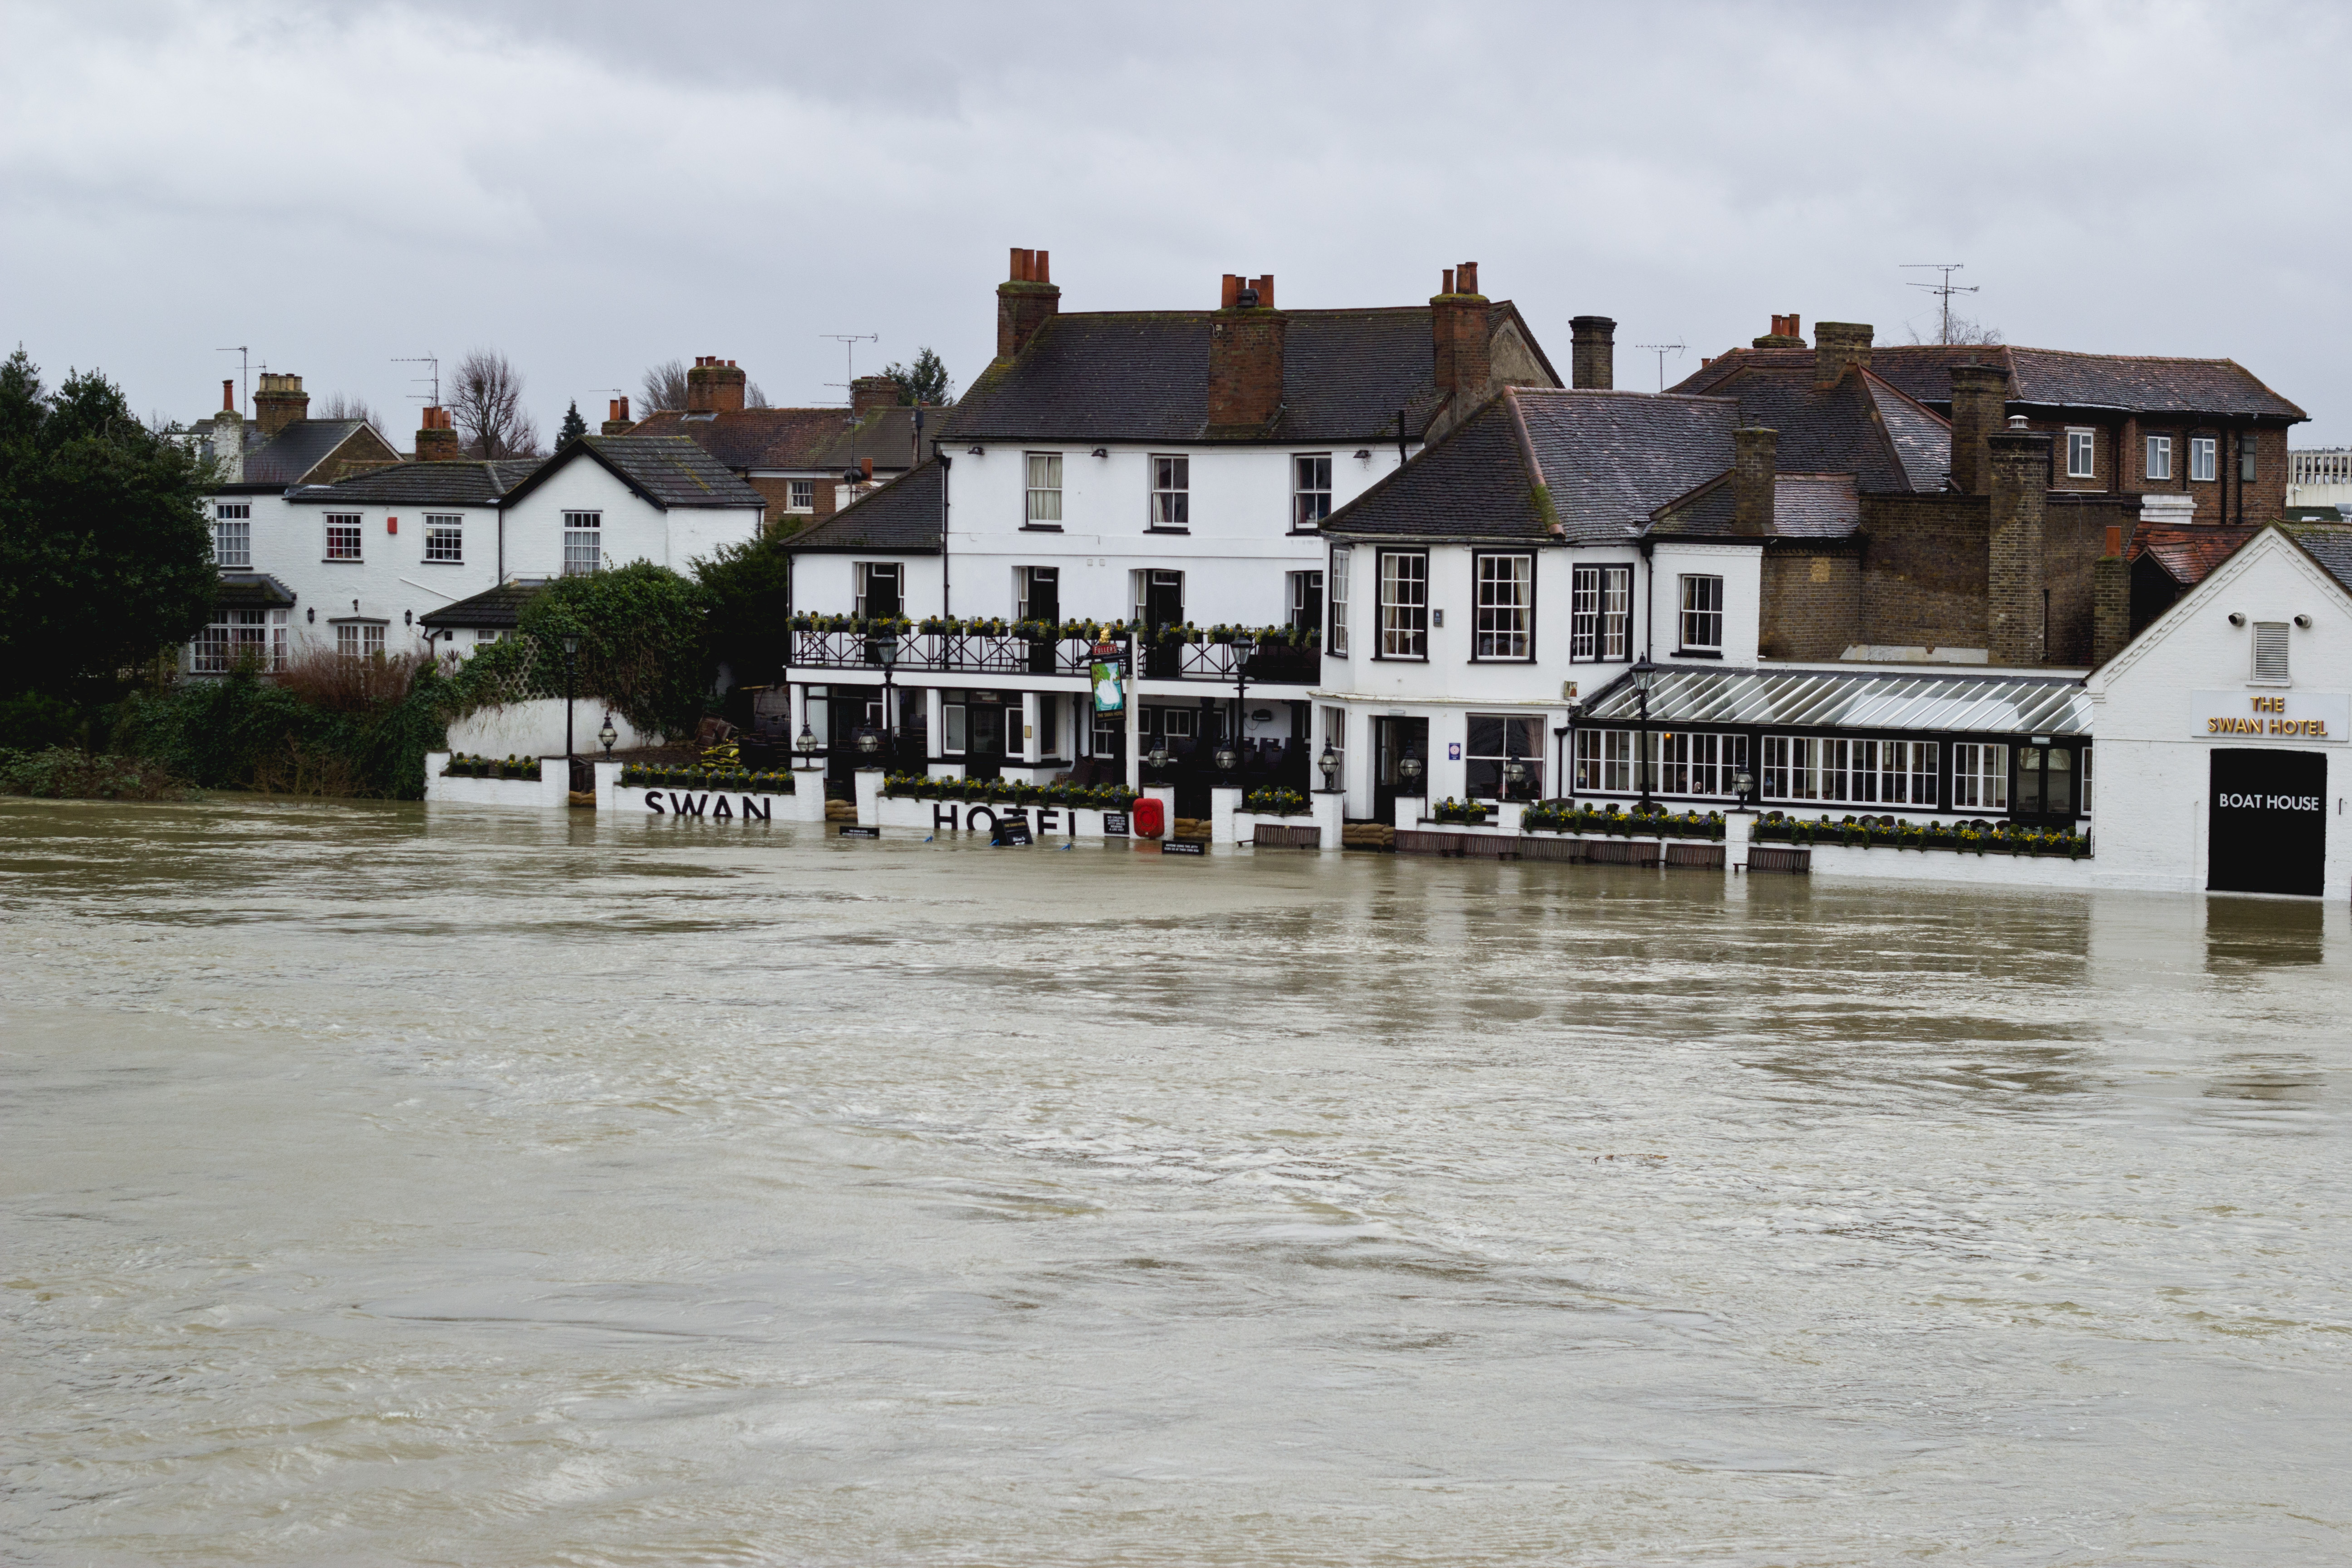 File:UK Floods, Staines-upon-Thames, Swan Hotel.jpg ...